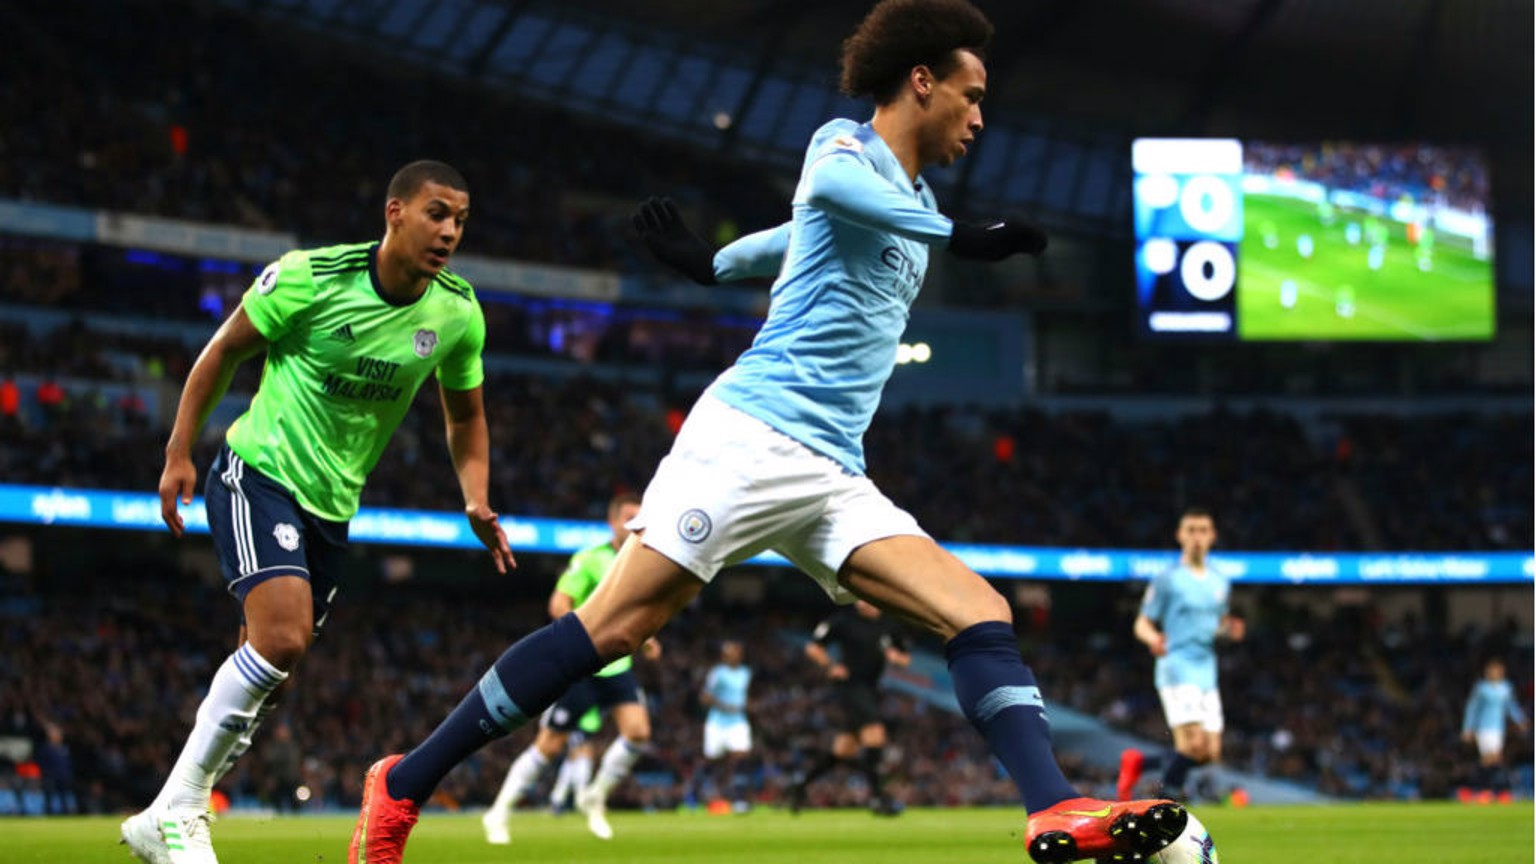 WING COMMAND: Leroy Sane takes control of the ball